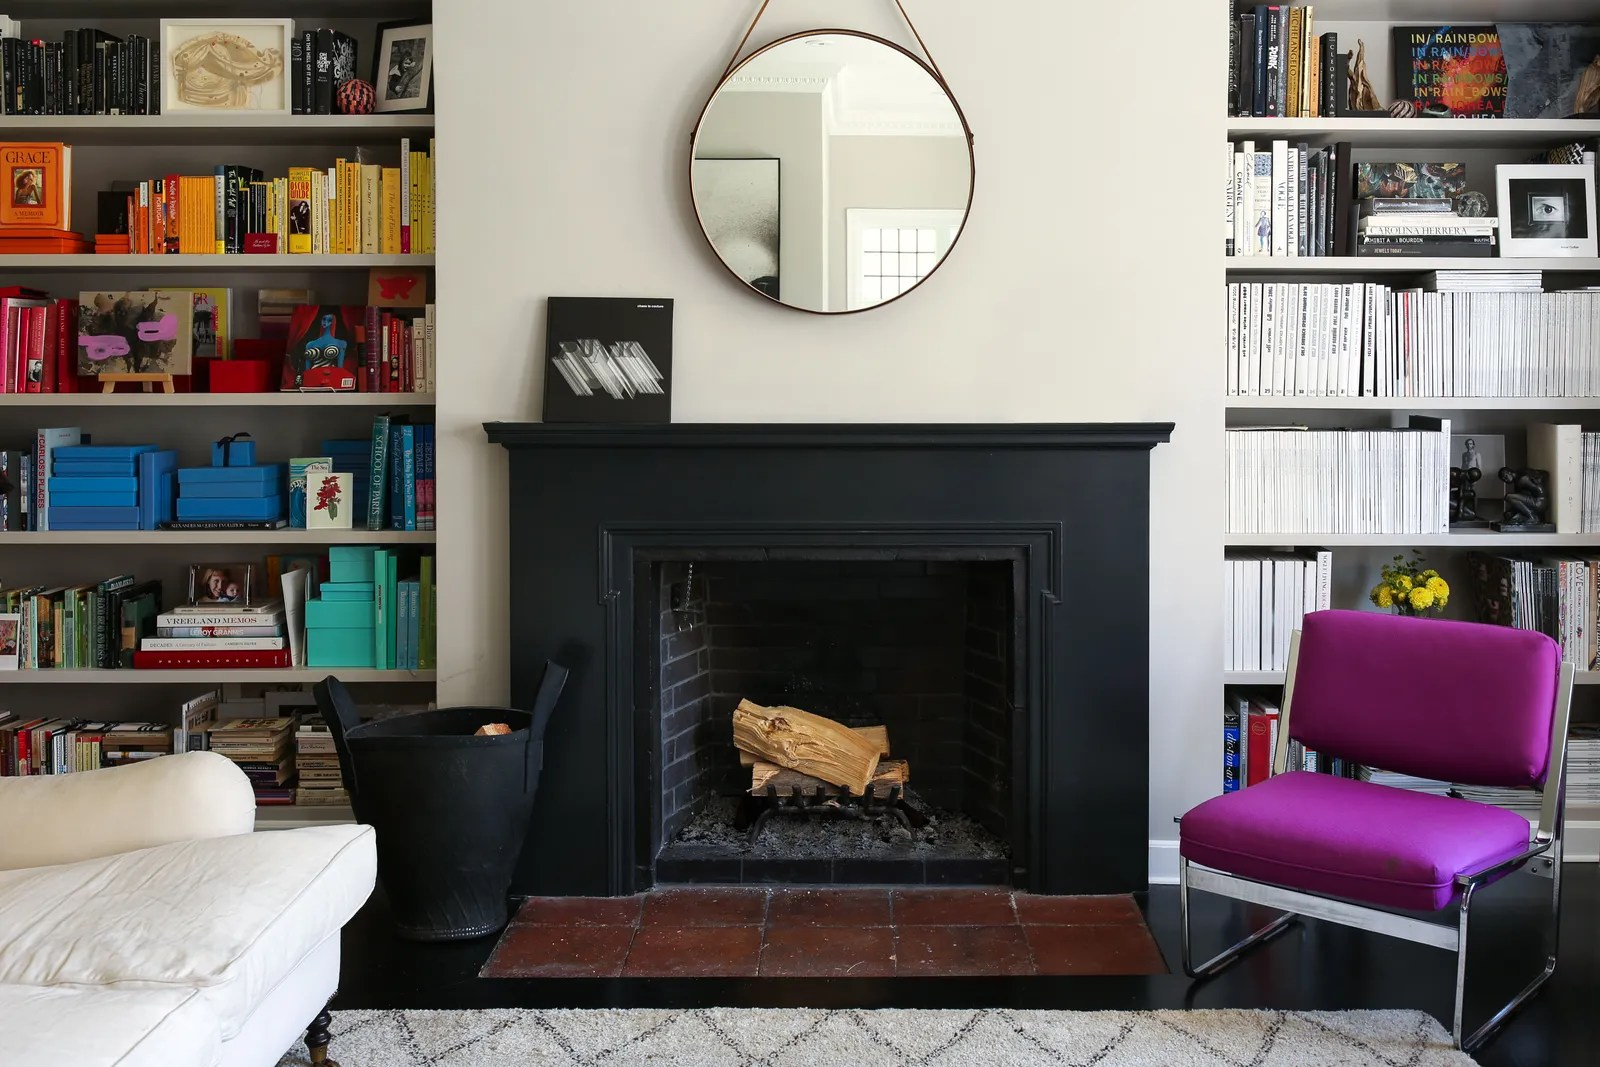 8 Small Living Room Ideas That Will Maximize Your Space ... on Small Space Small Living Room With Fireplace  id=41610